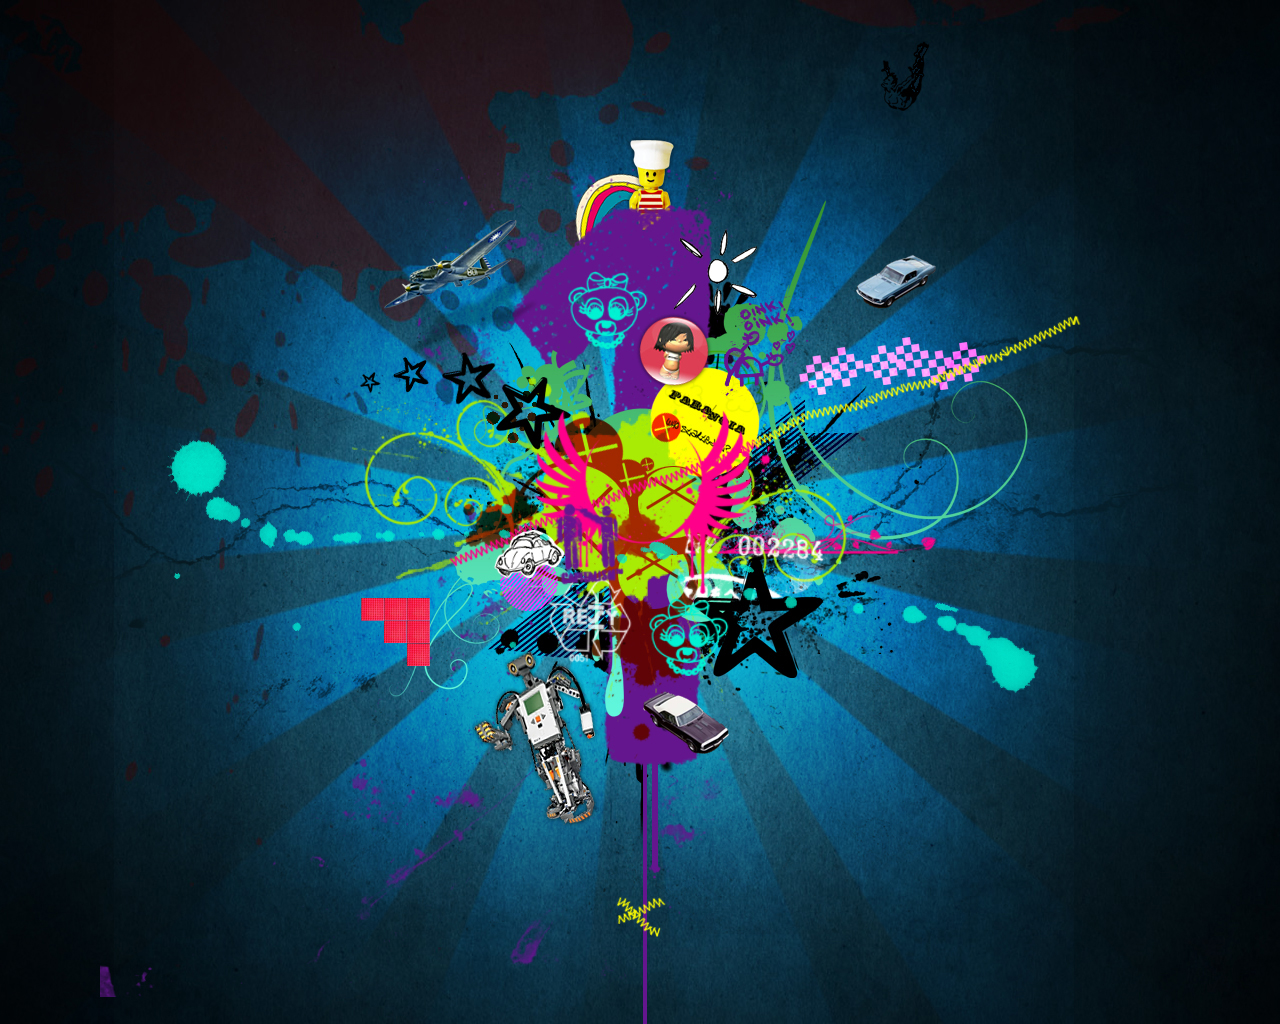 Creative Graphics Design Background: Create Ribbons And Other Cool Graphics In Seconds